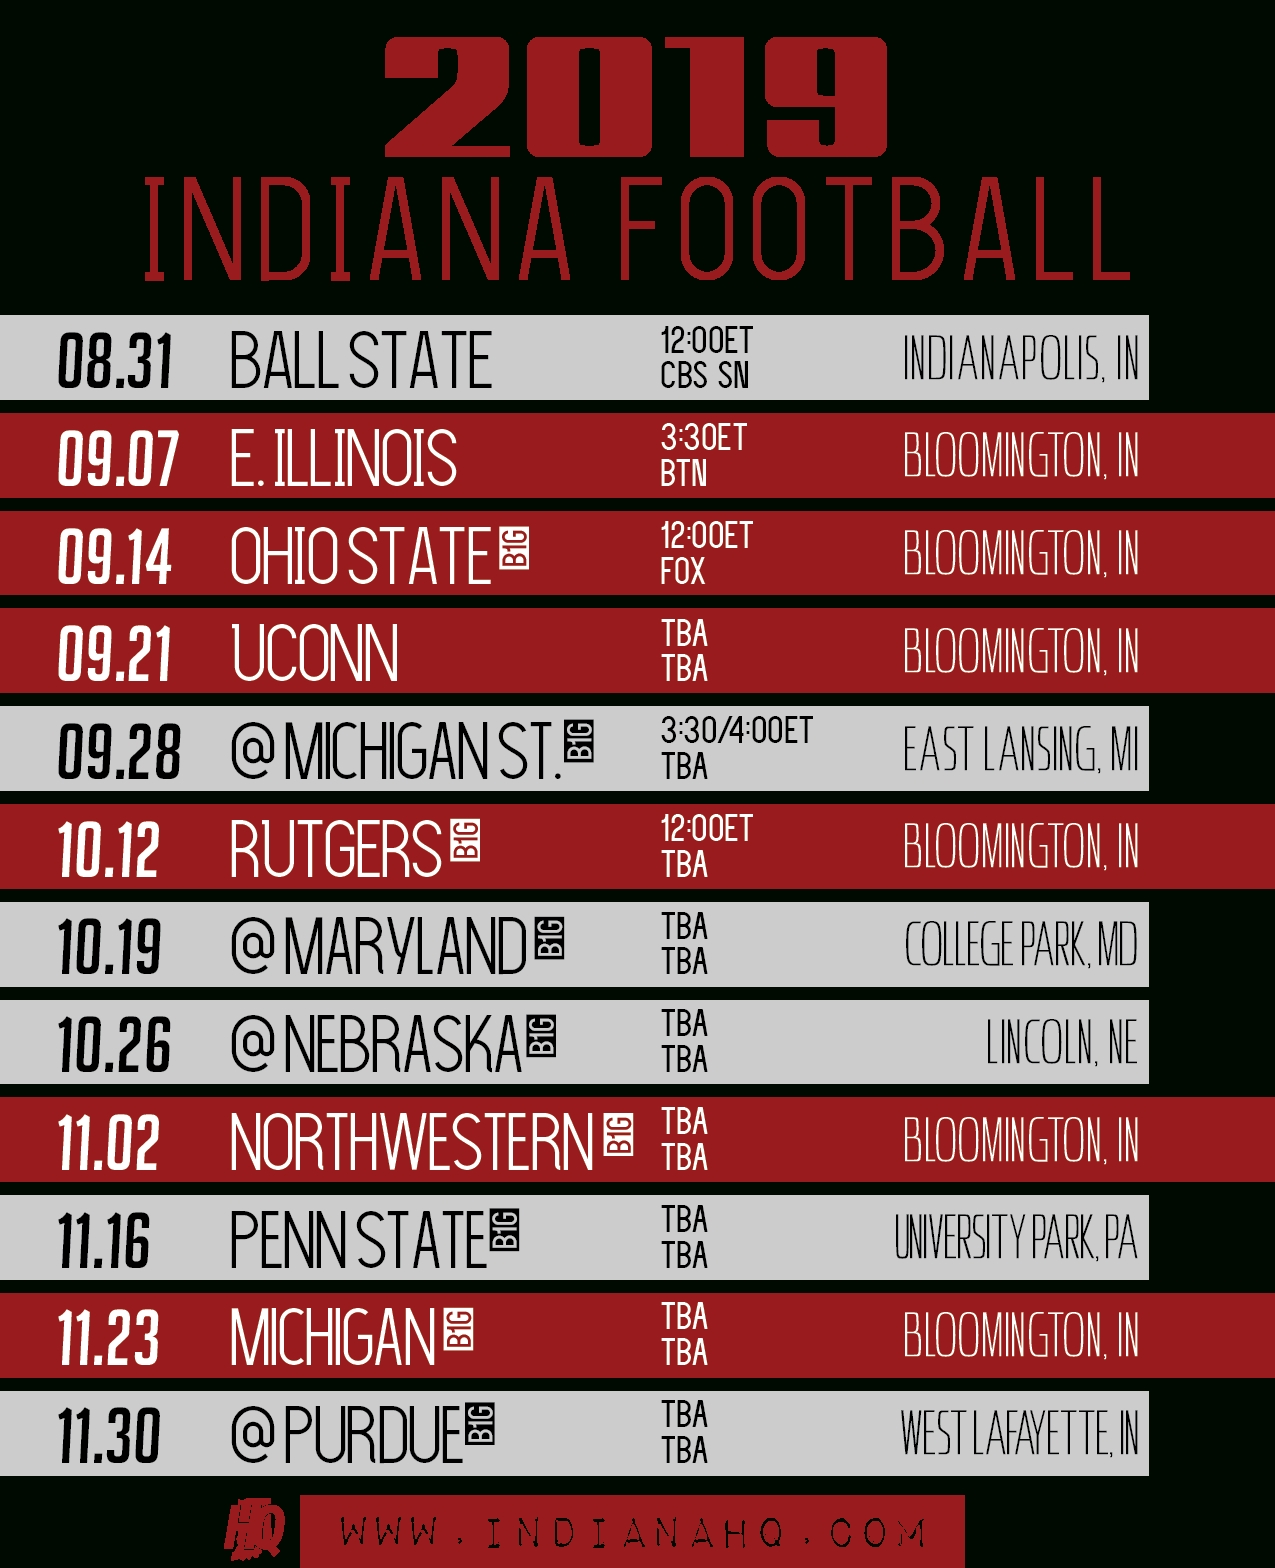 2019 Indiana Football Schedule (Printable) - Indianahq